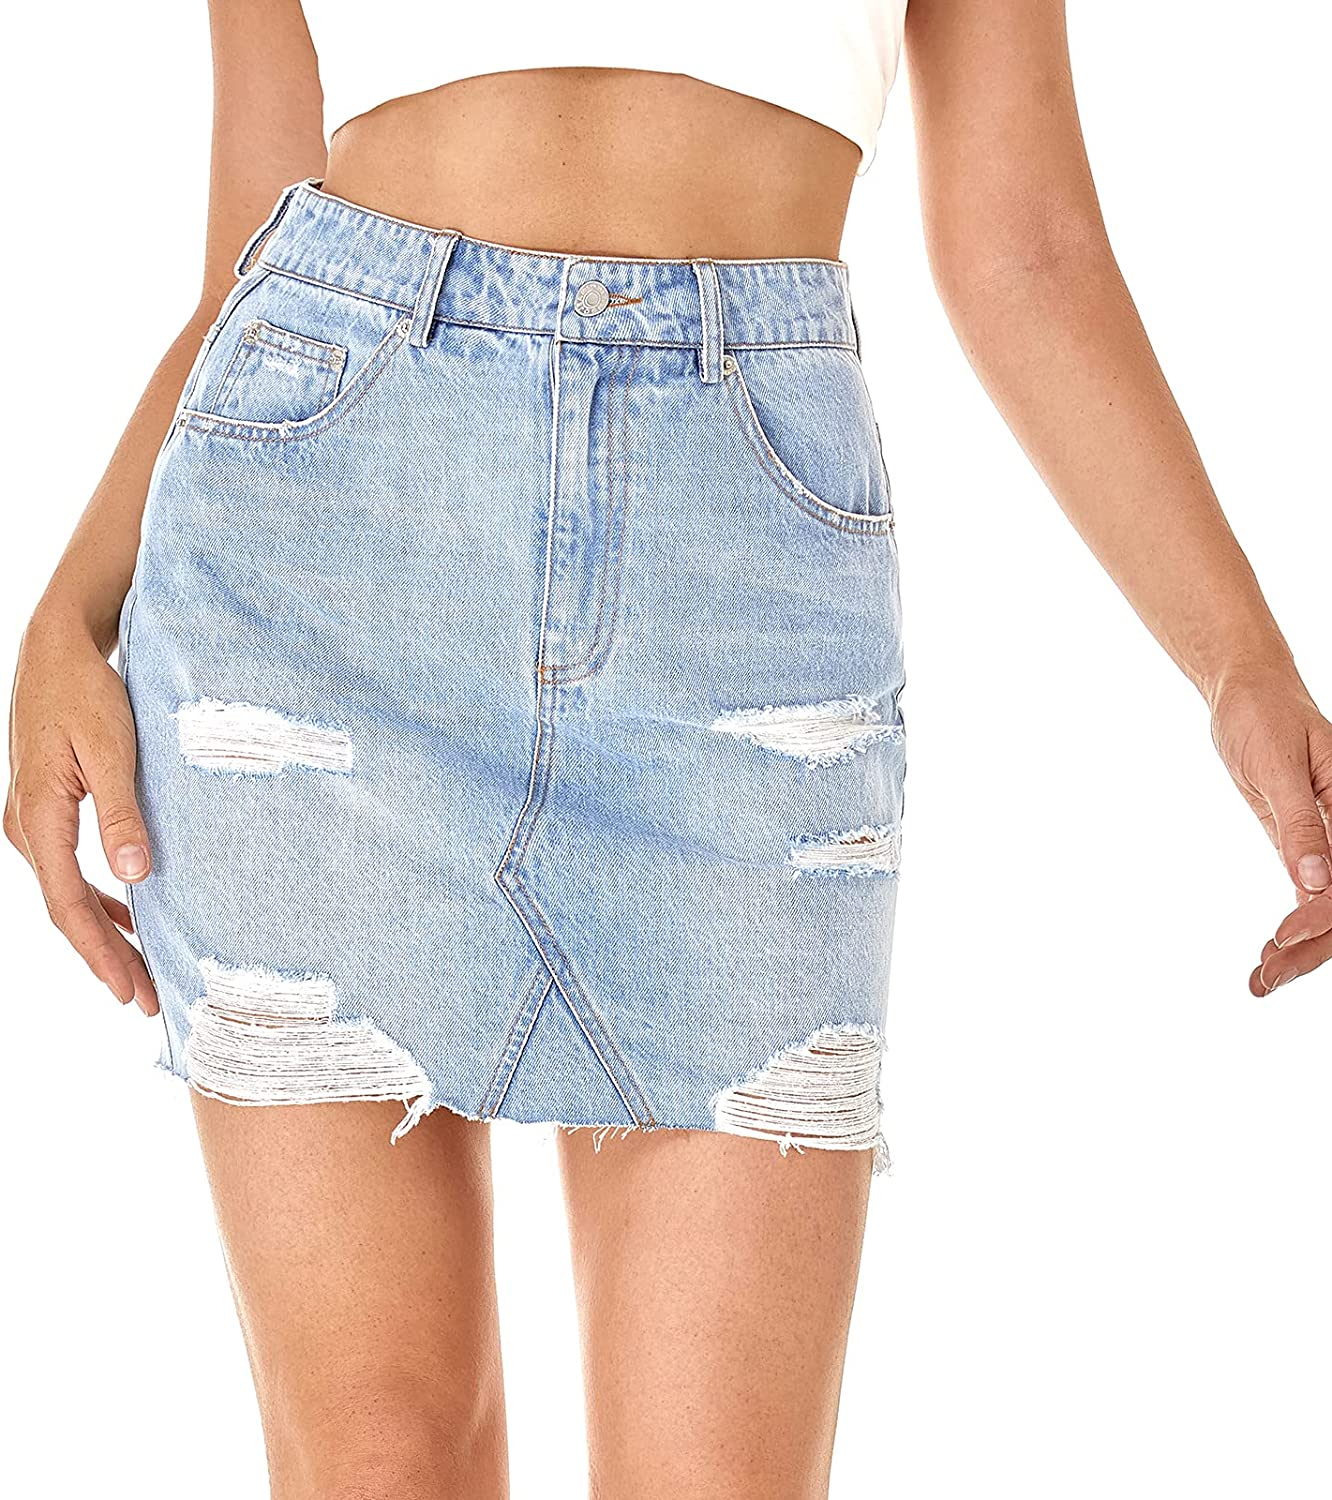 Cheryl Co Women's Casual Mid Waisted Washed Frayed Pockets Denim Jean Short Skirt